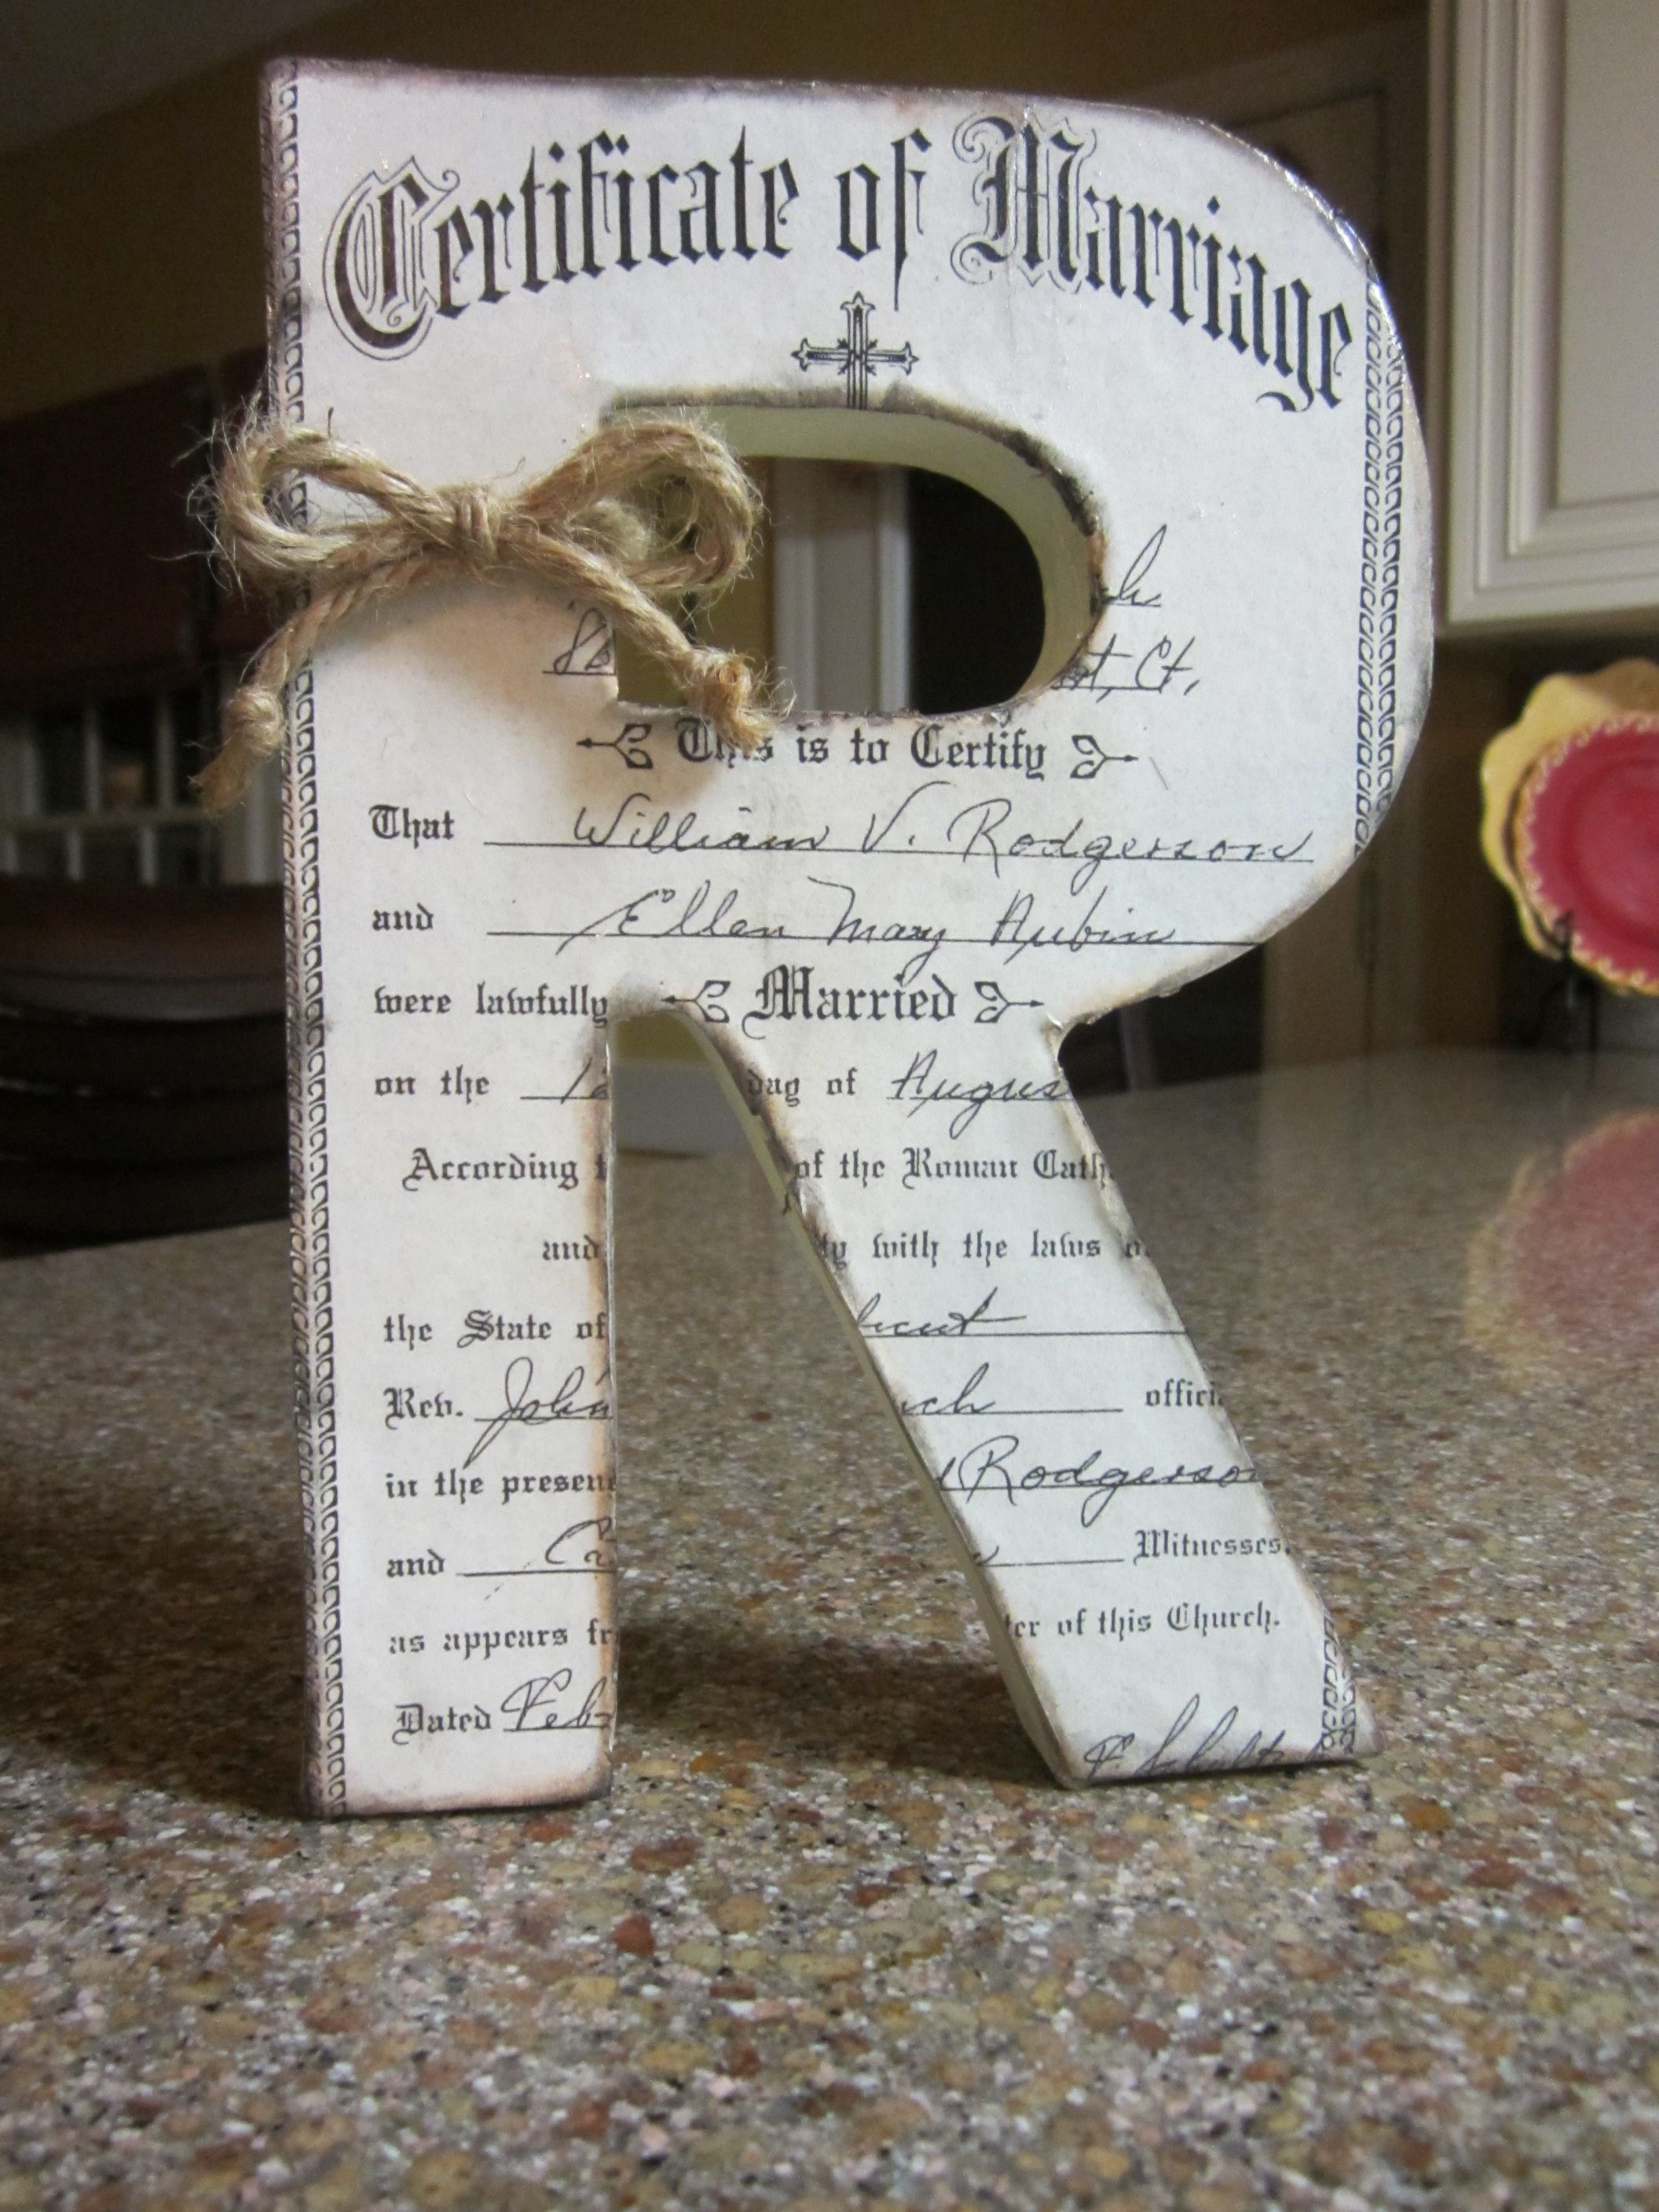 Wedding anniversary decorations at home  Copy of Grandparentus marriage certificate onto their initial as a